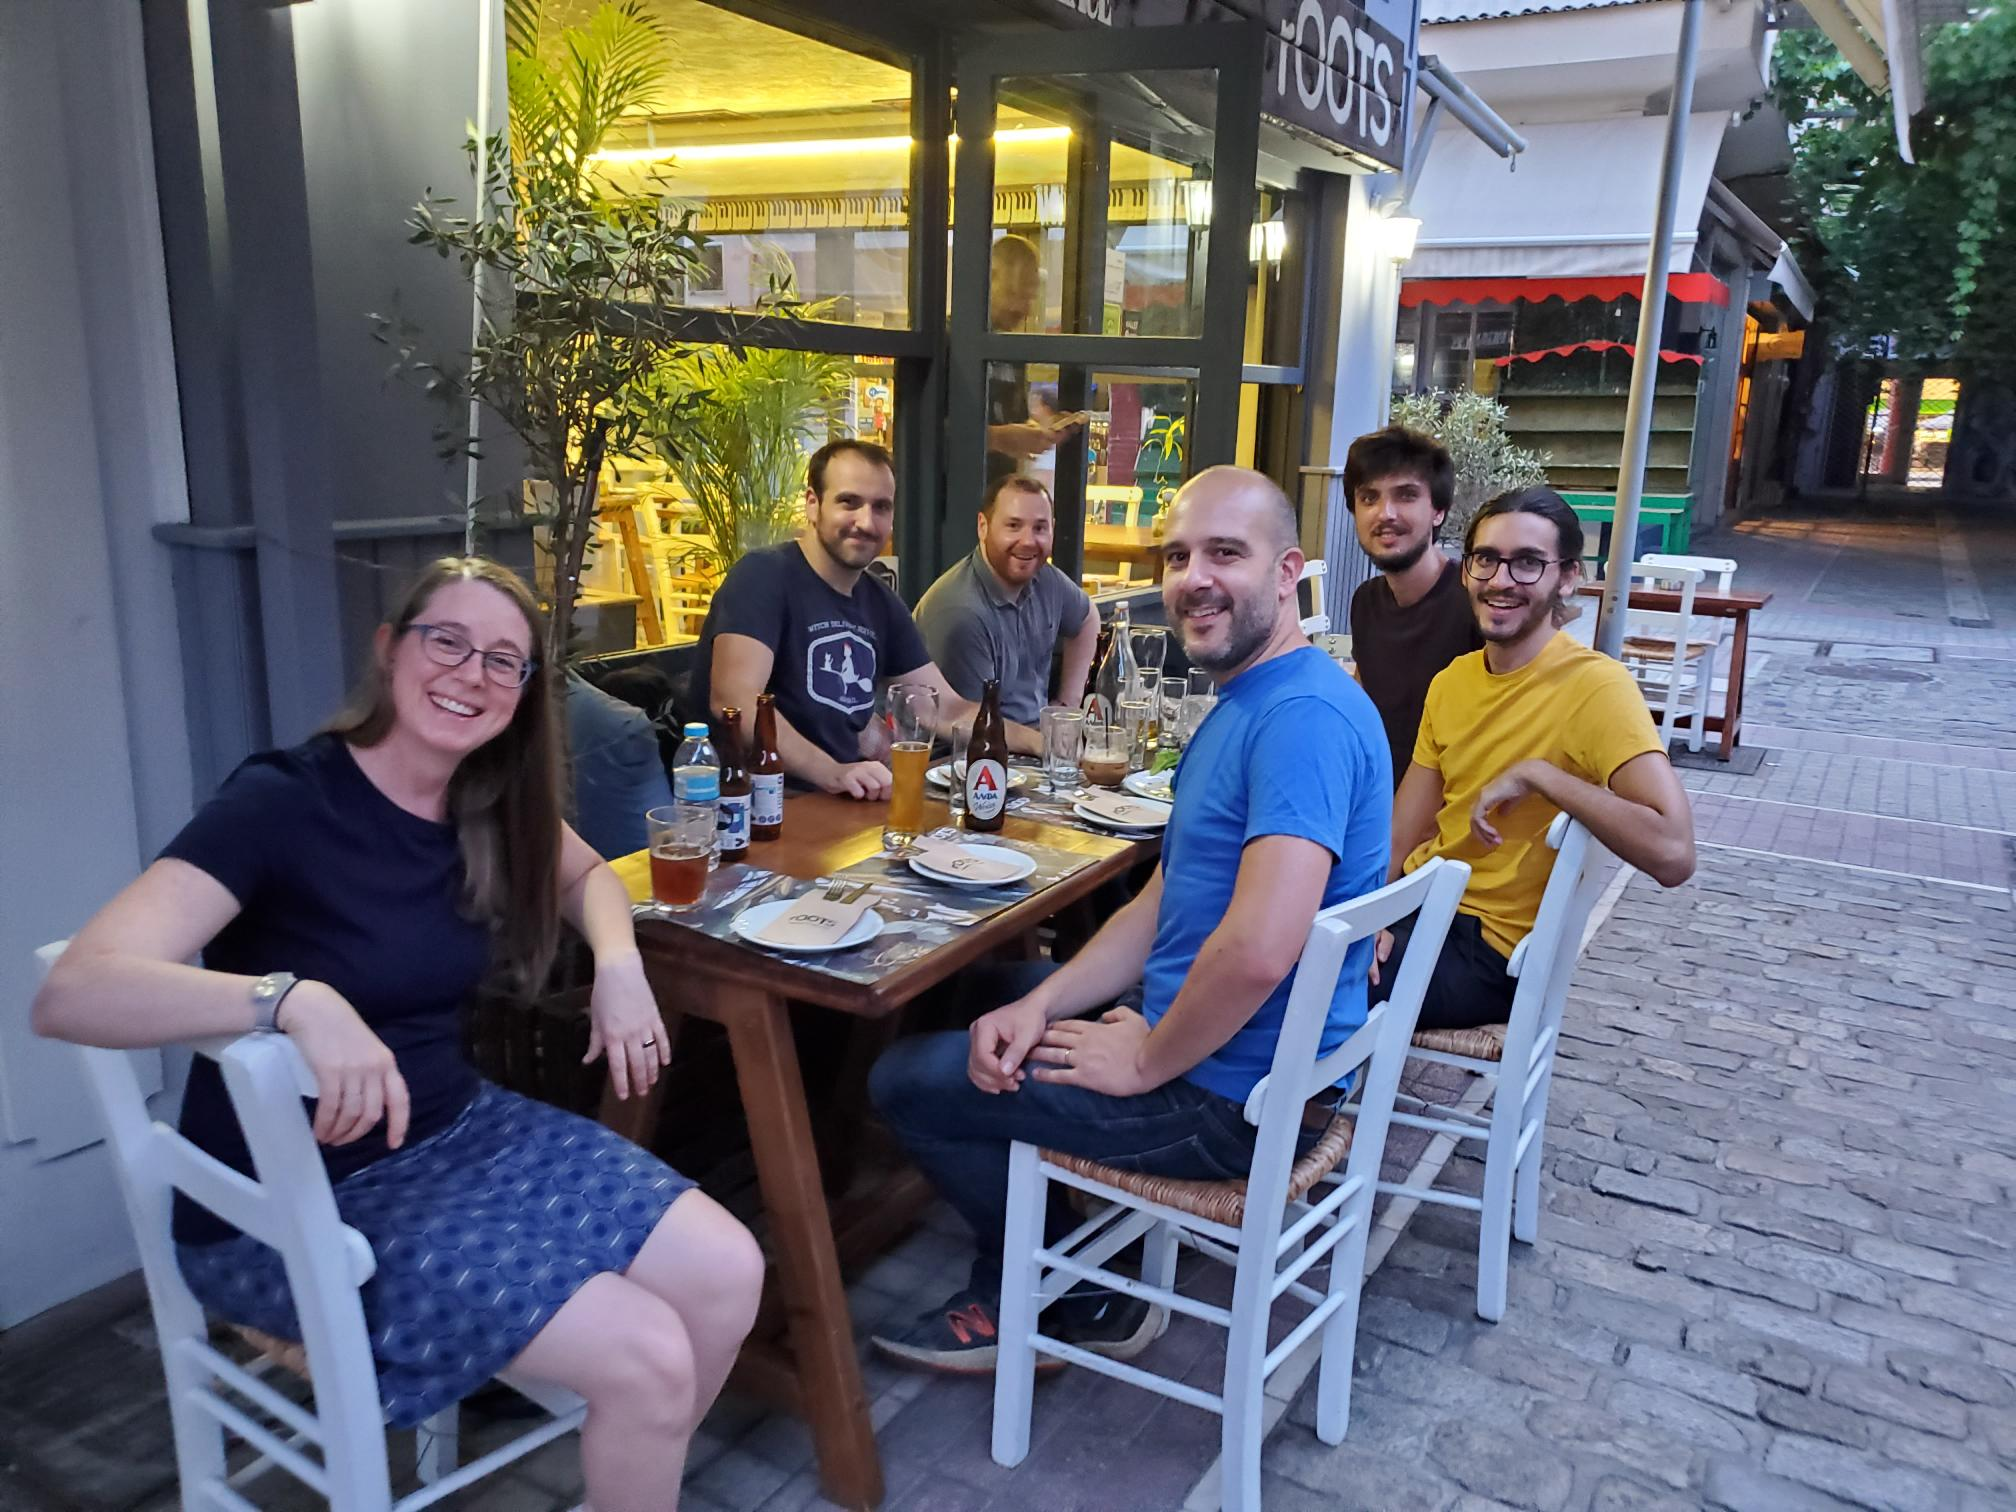 Heather, Adrien, Bob, François, Tobias and Julian sitting outside a restaurant